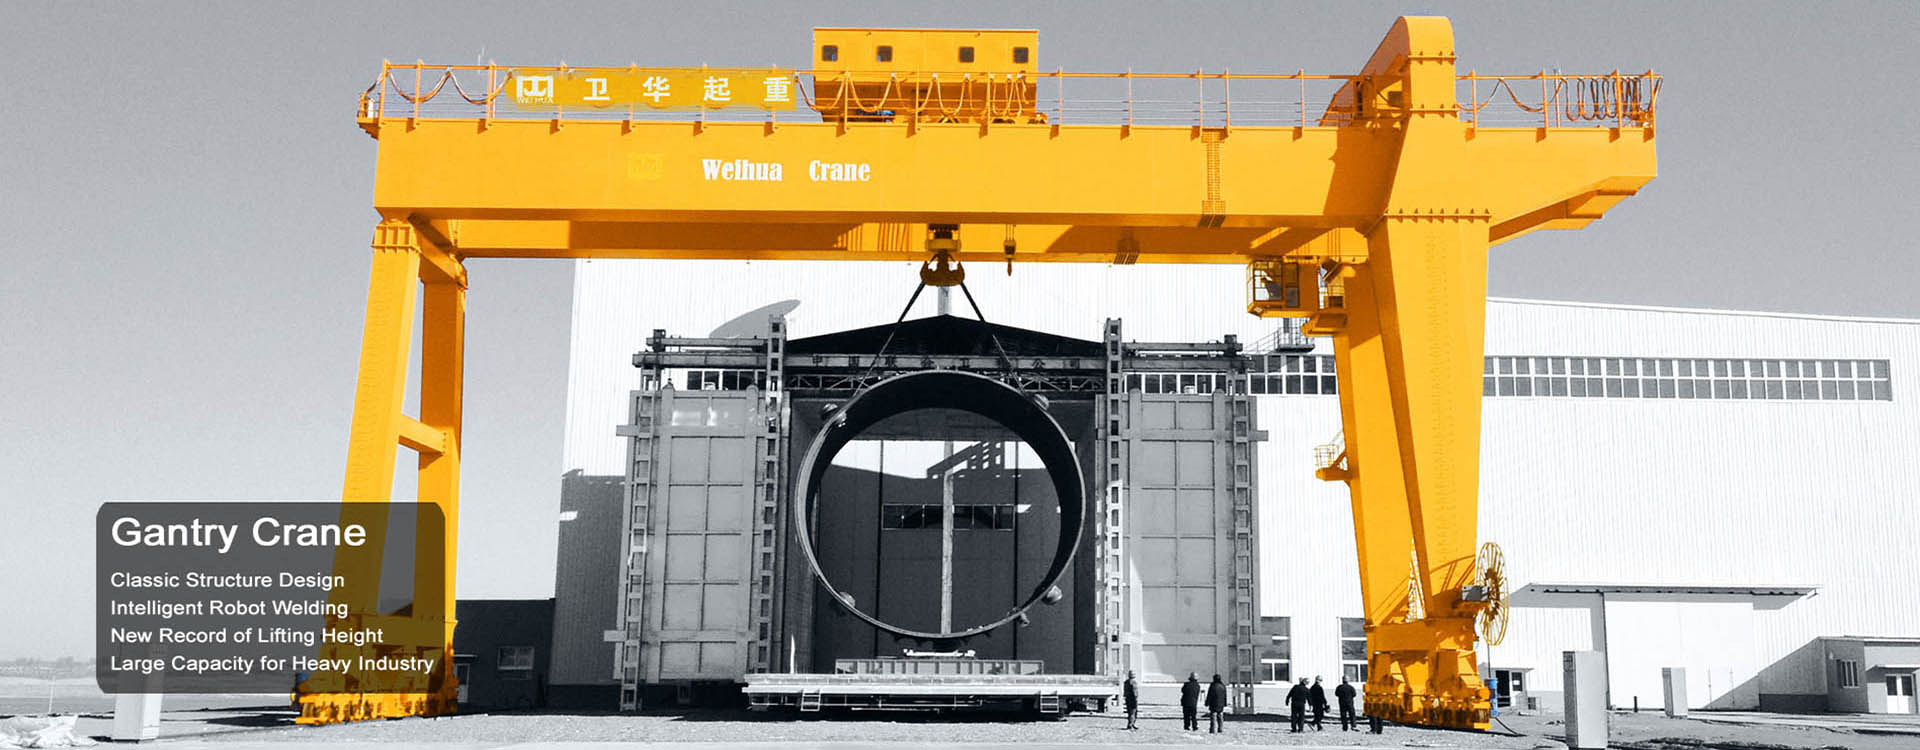 Weihua Group Gantry Crane